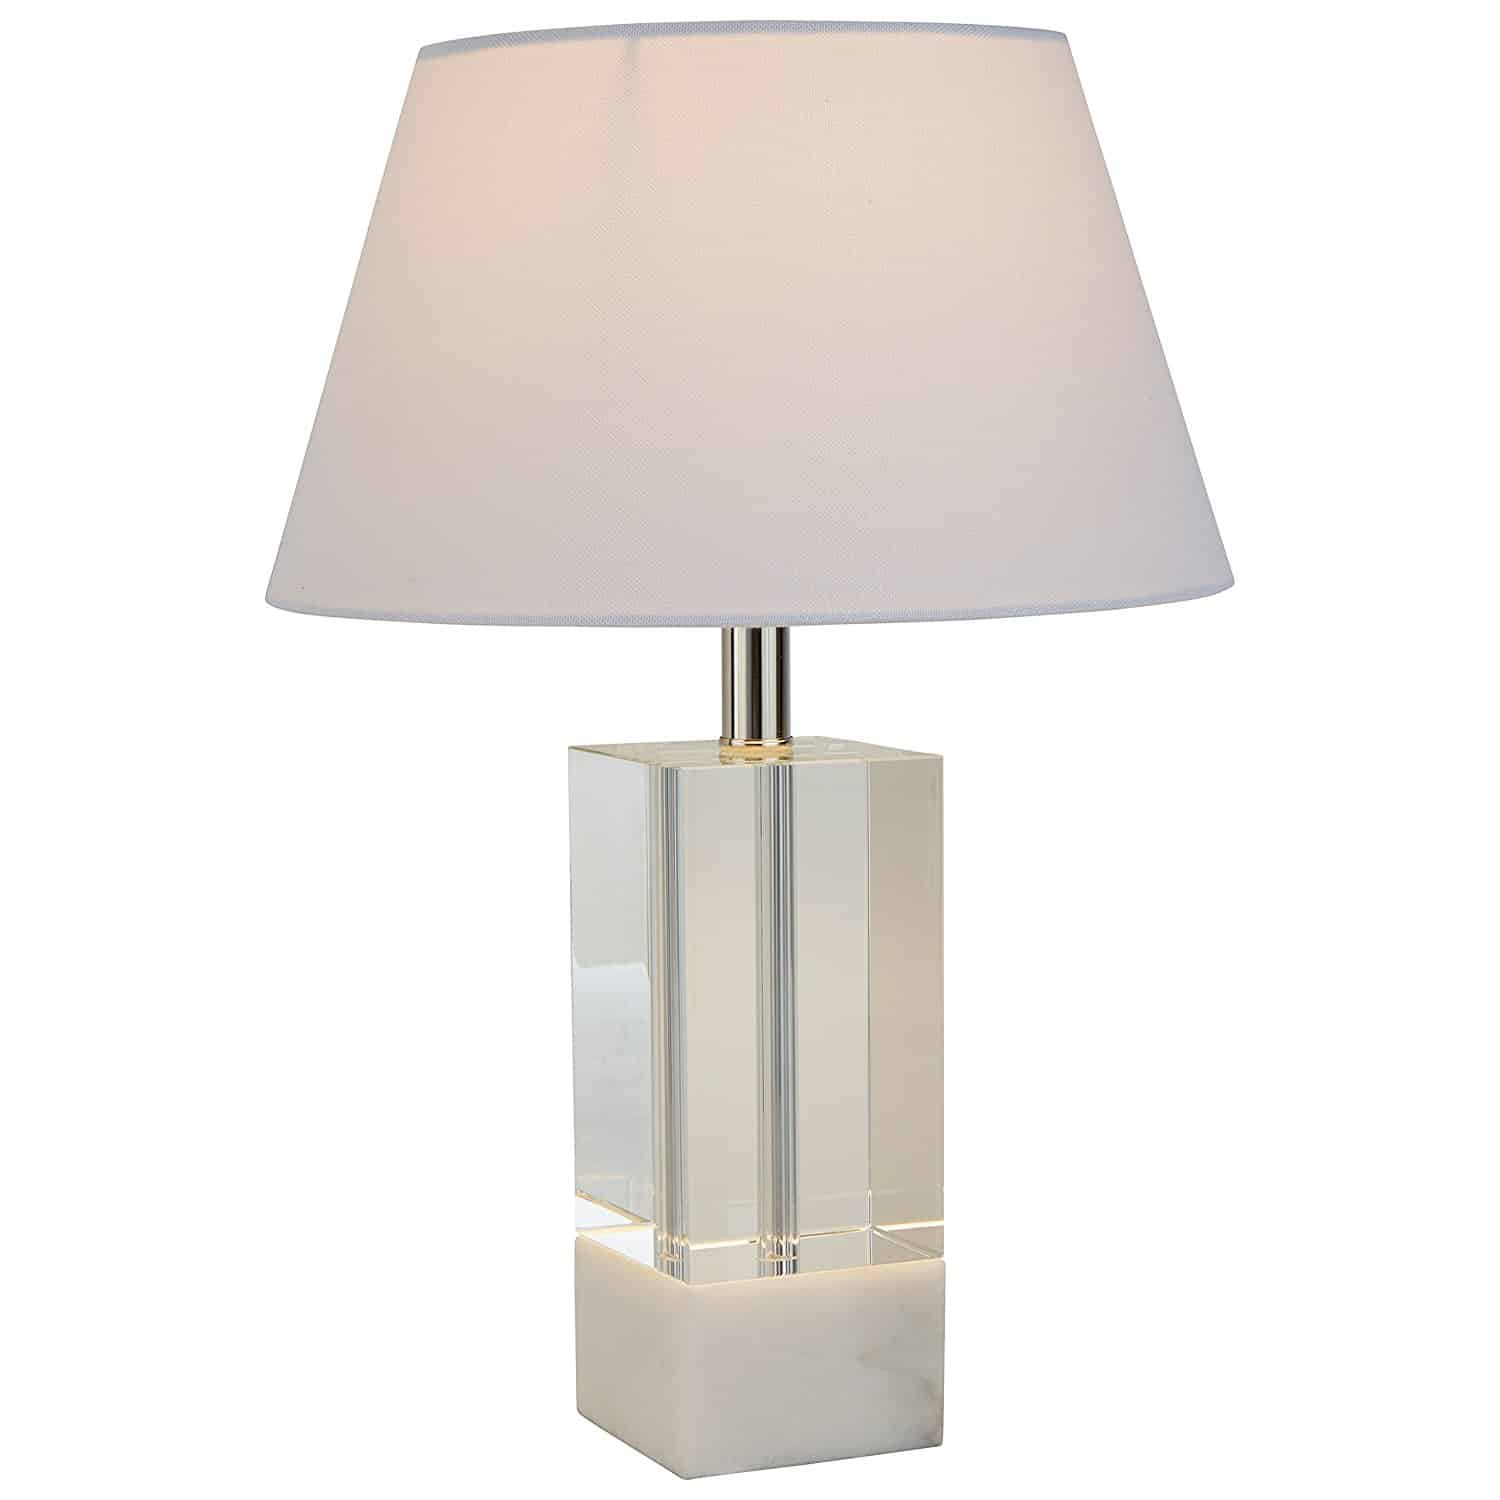 Stone & Beam Modern Crystal Table Lamp